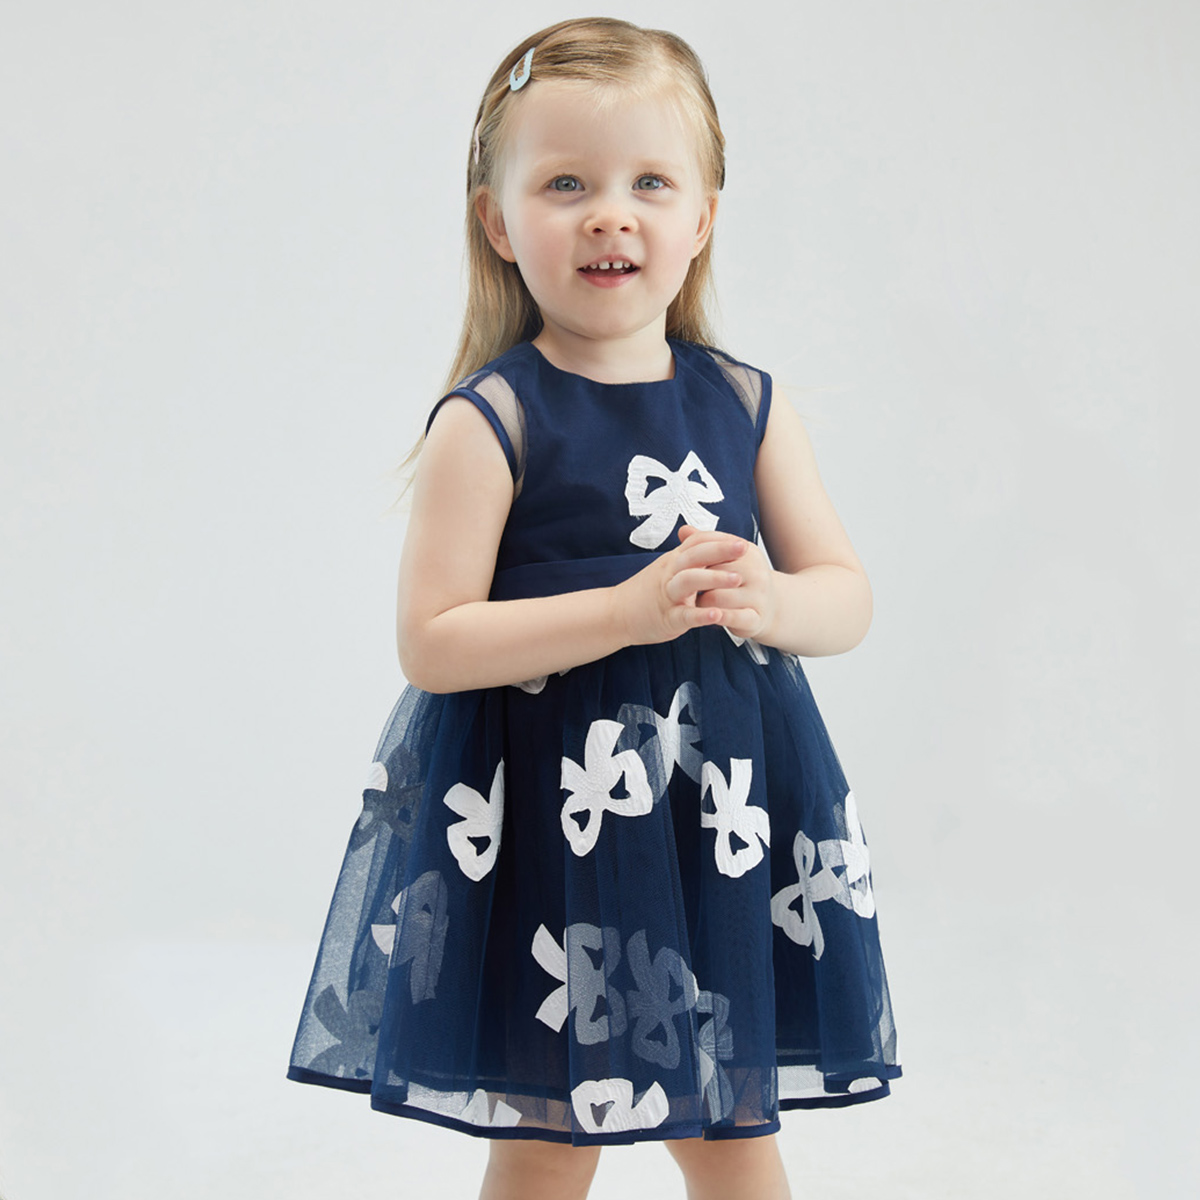 Davi Bella girl dress 2021 new summer child skirt children's clothing foreign air bowler female princess dress